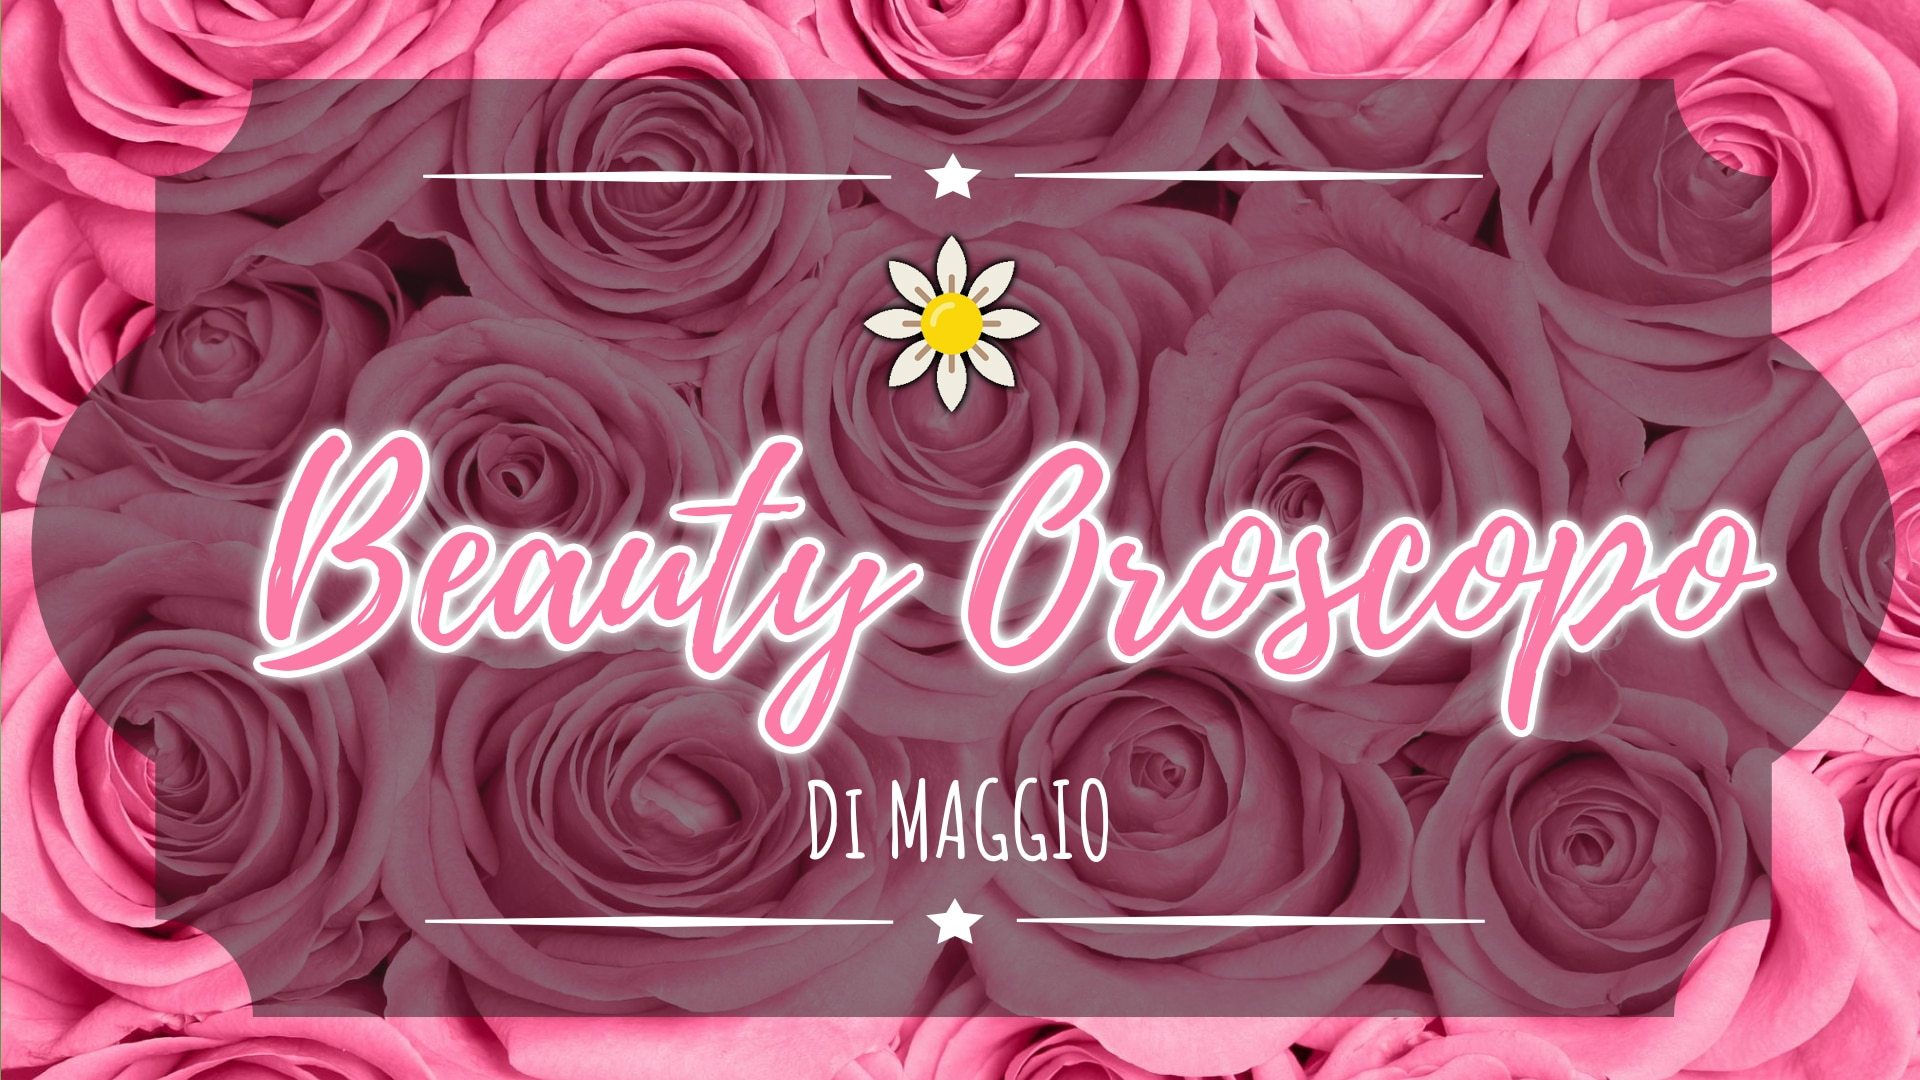 beauty-oroscopo-maggio-about-beauty-cover